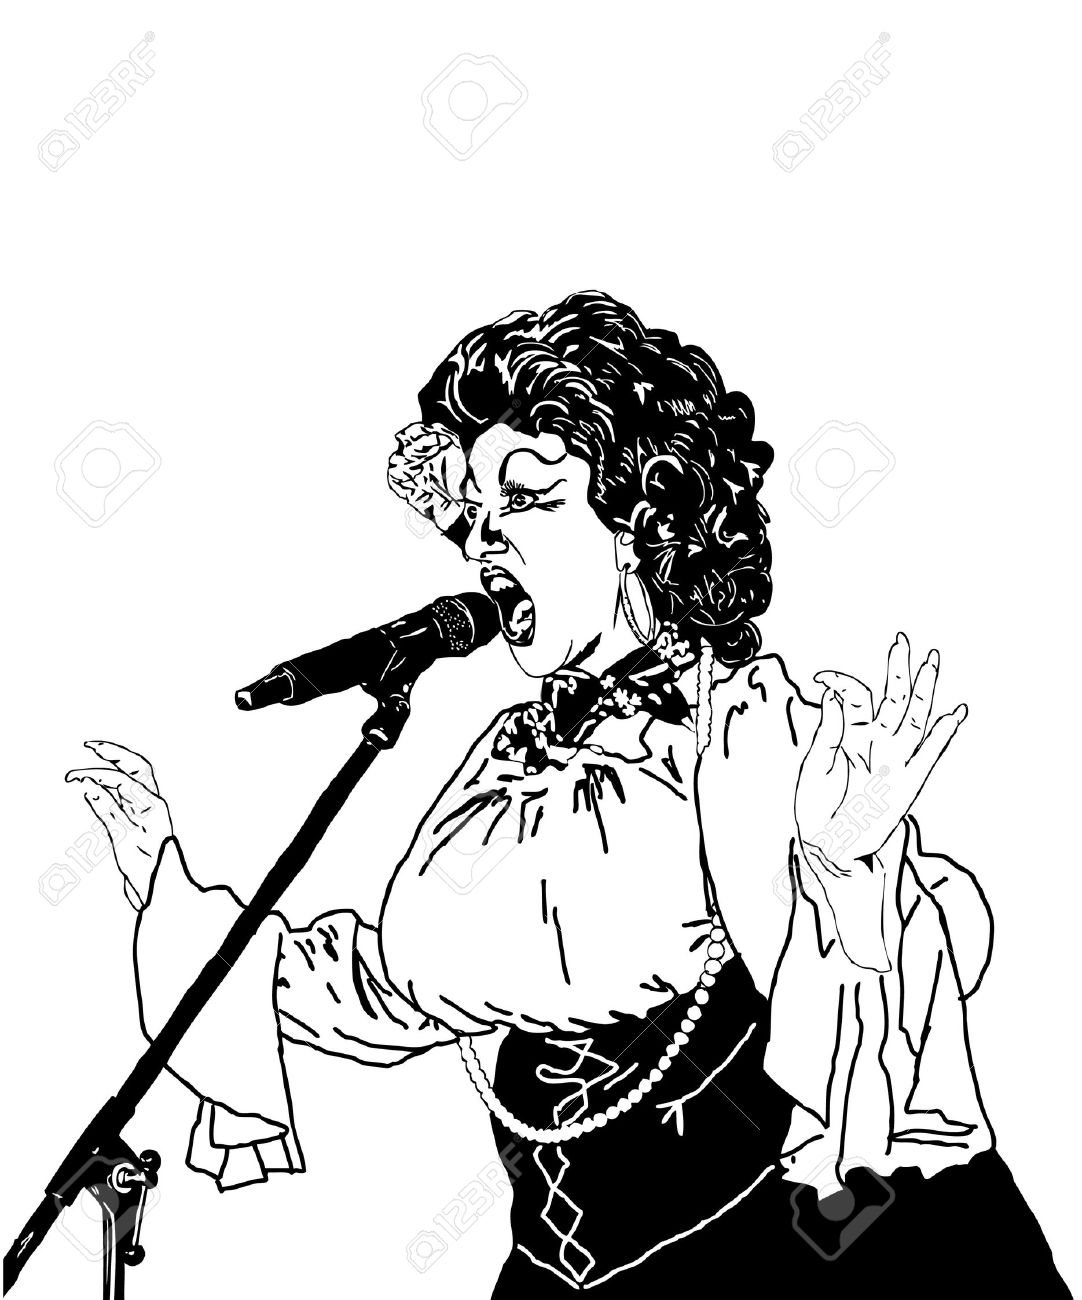 1082x1300 Black And White Picture Actress Singer At The Microphone Royalty